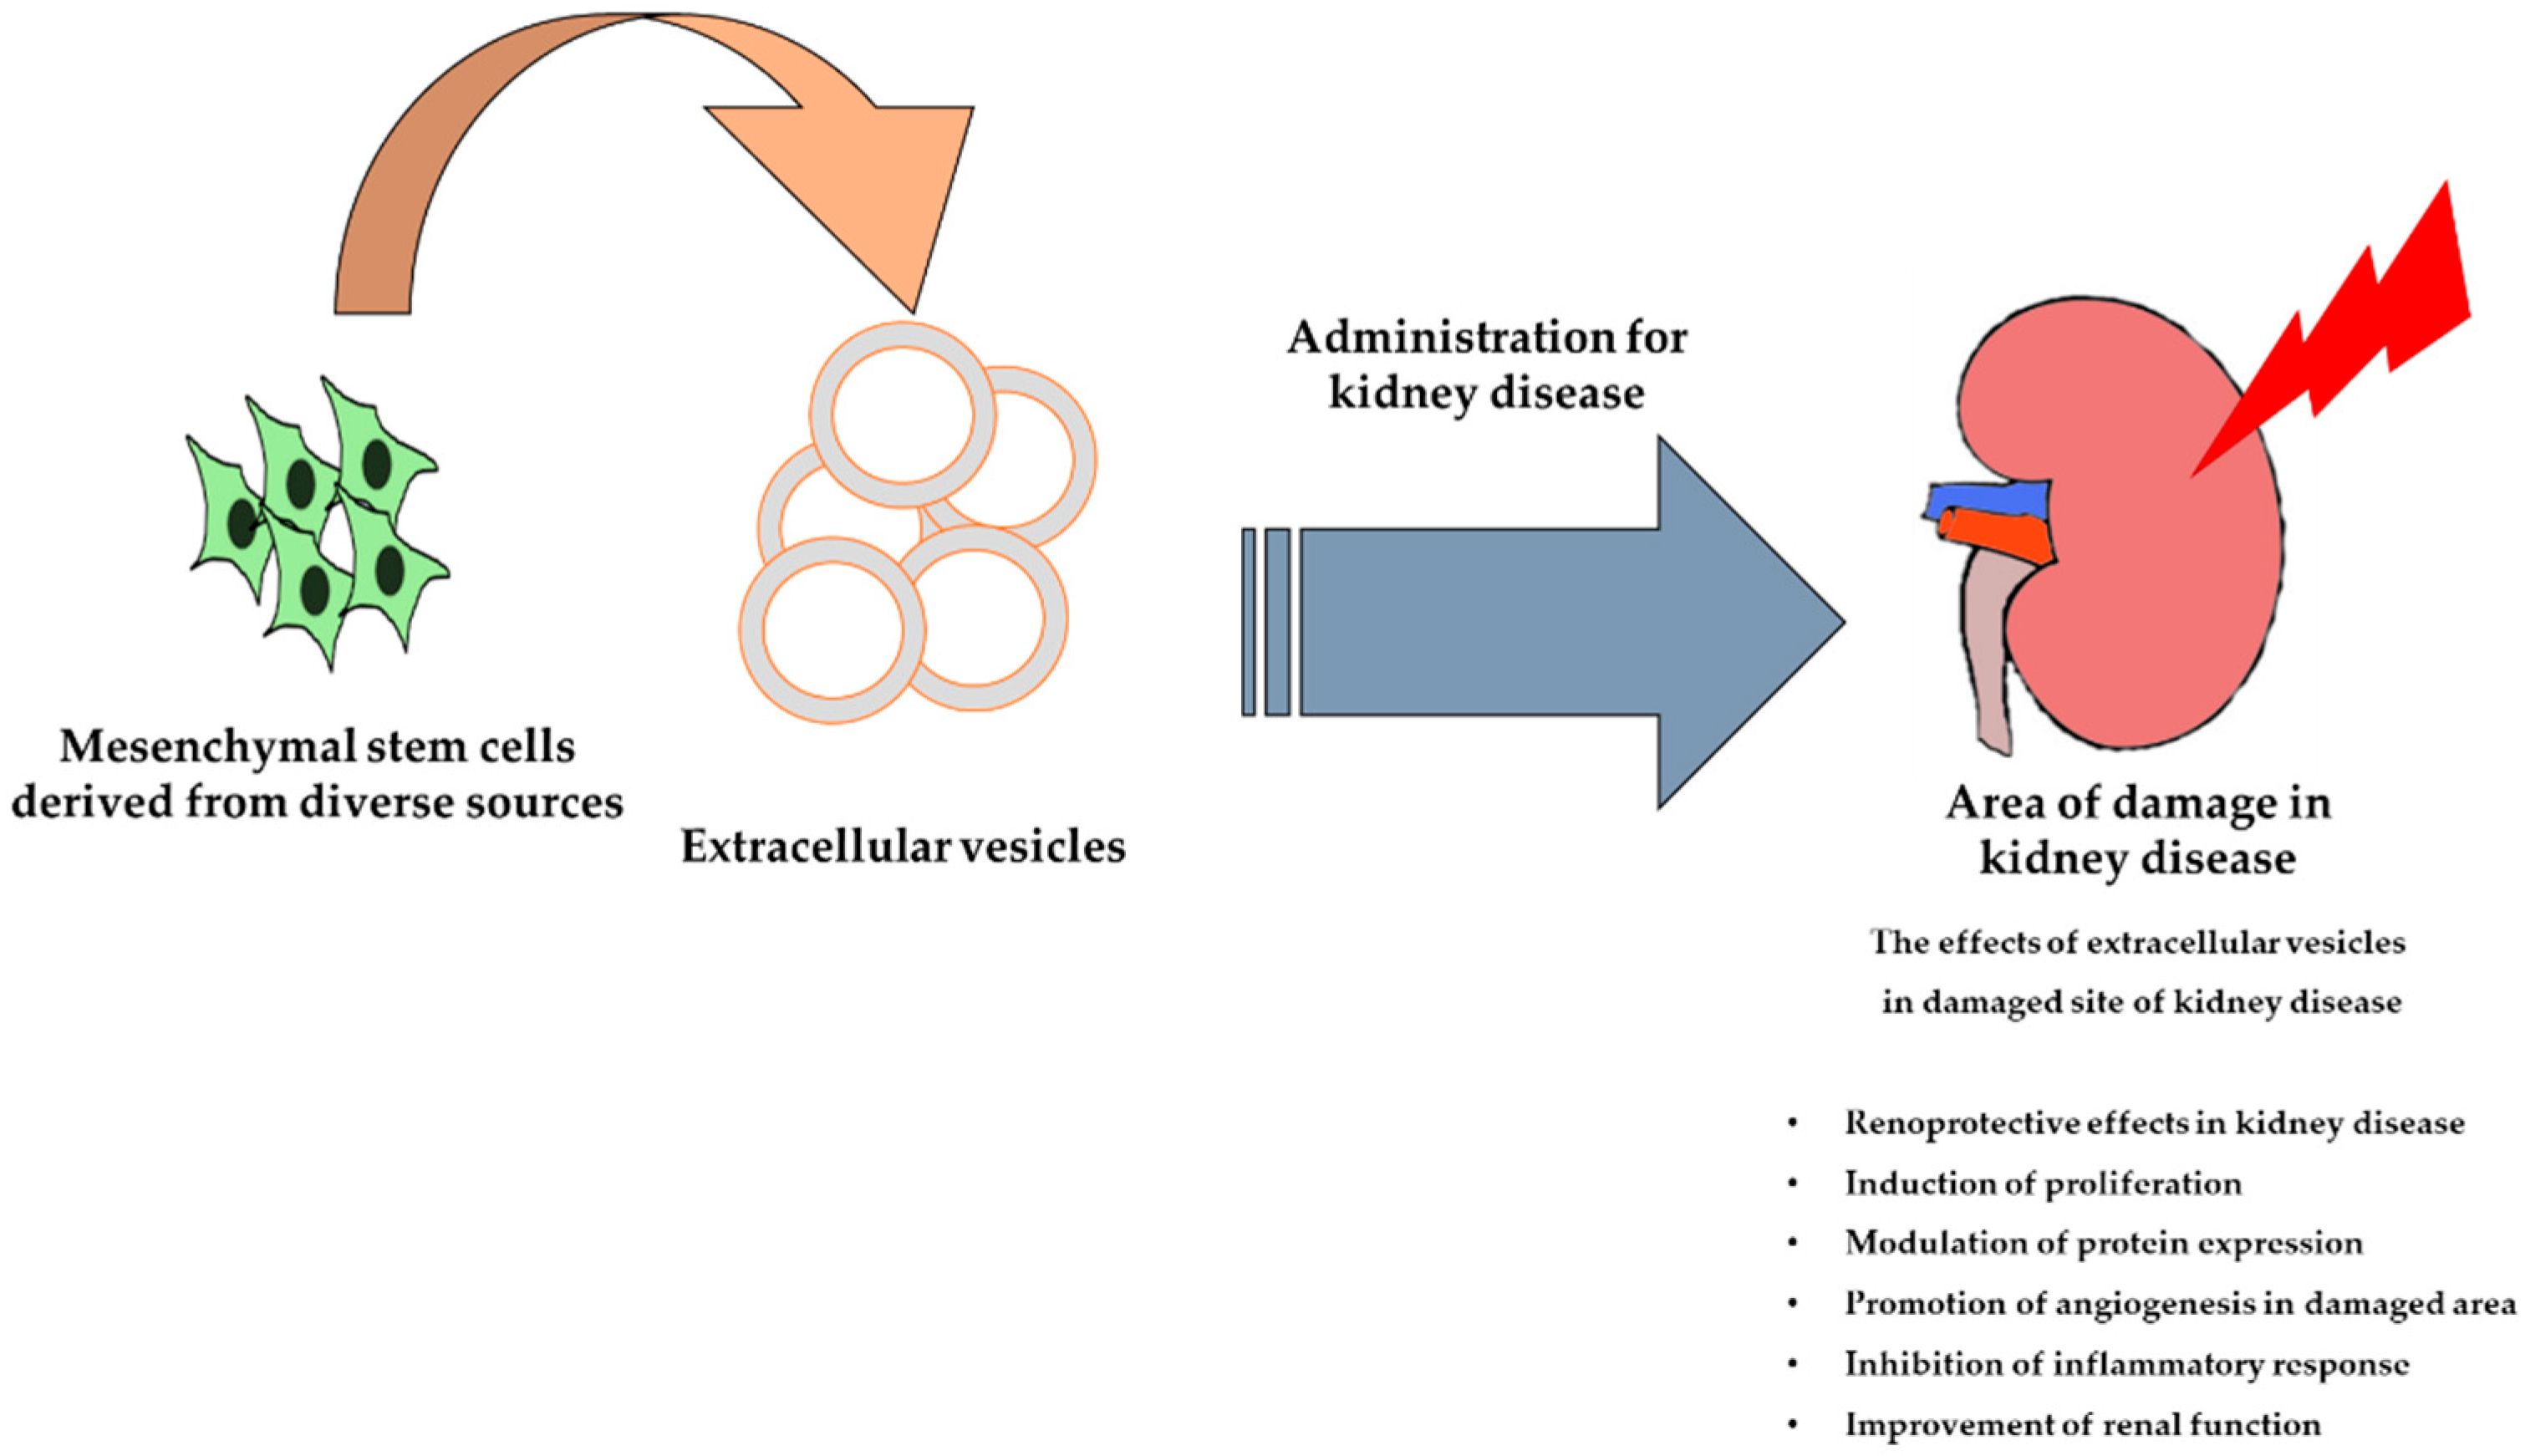 Ijms Free Full Text Potential And Therapeutic Efficacy Of Cell Based Therapy Using Mesenchymal Stem Cells For Acute Chronic Kidney Disease Html